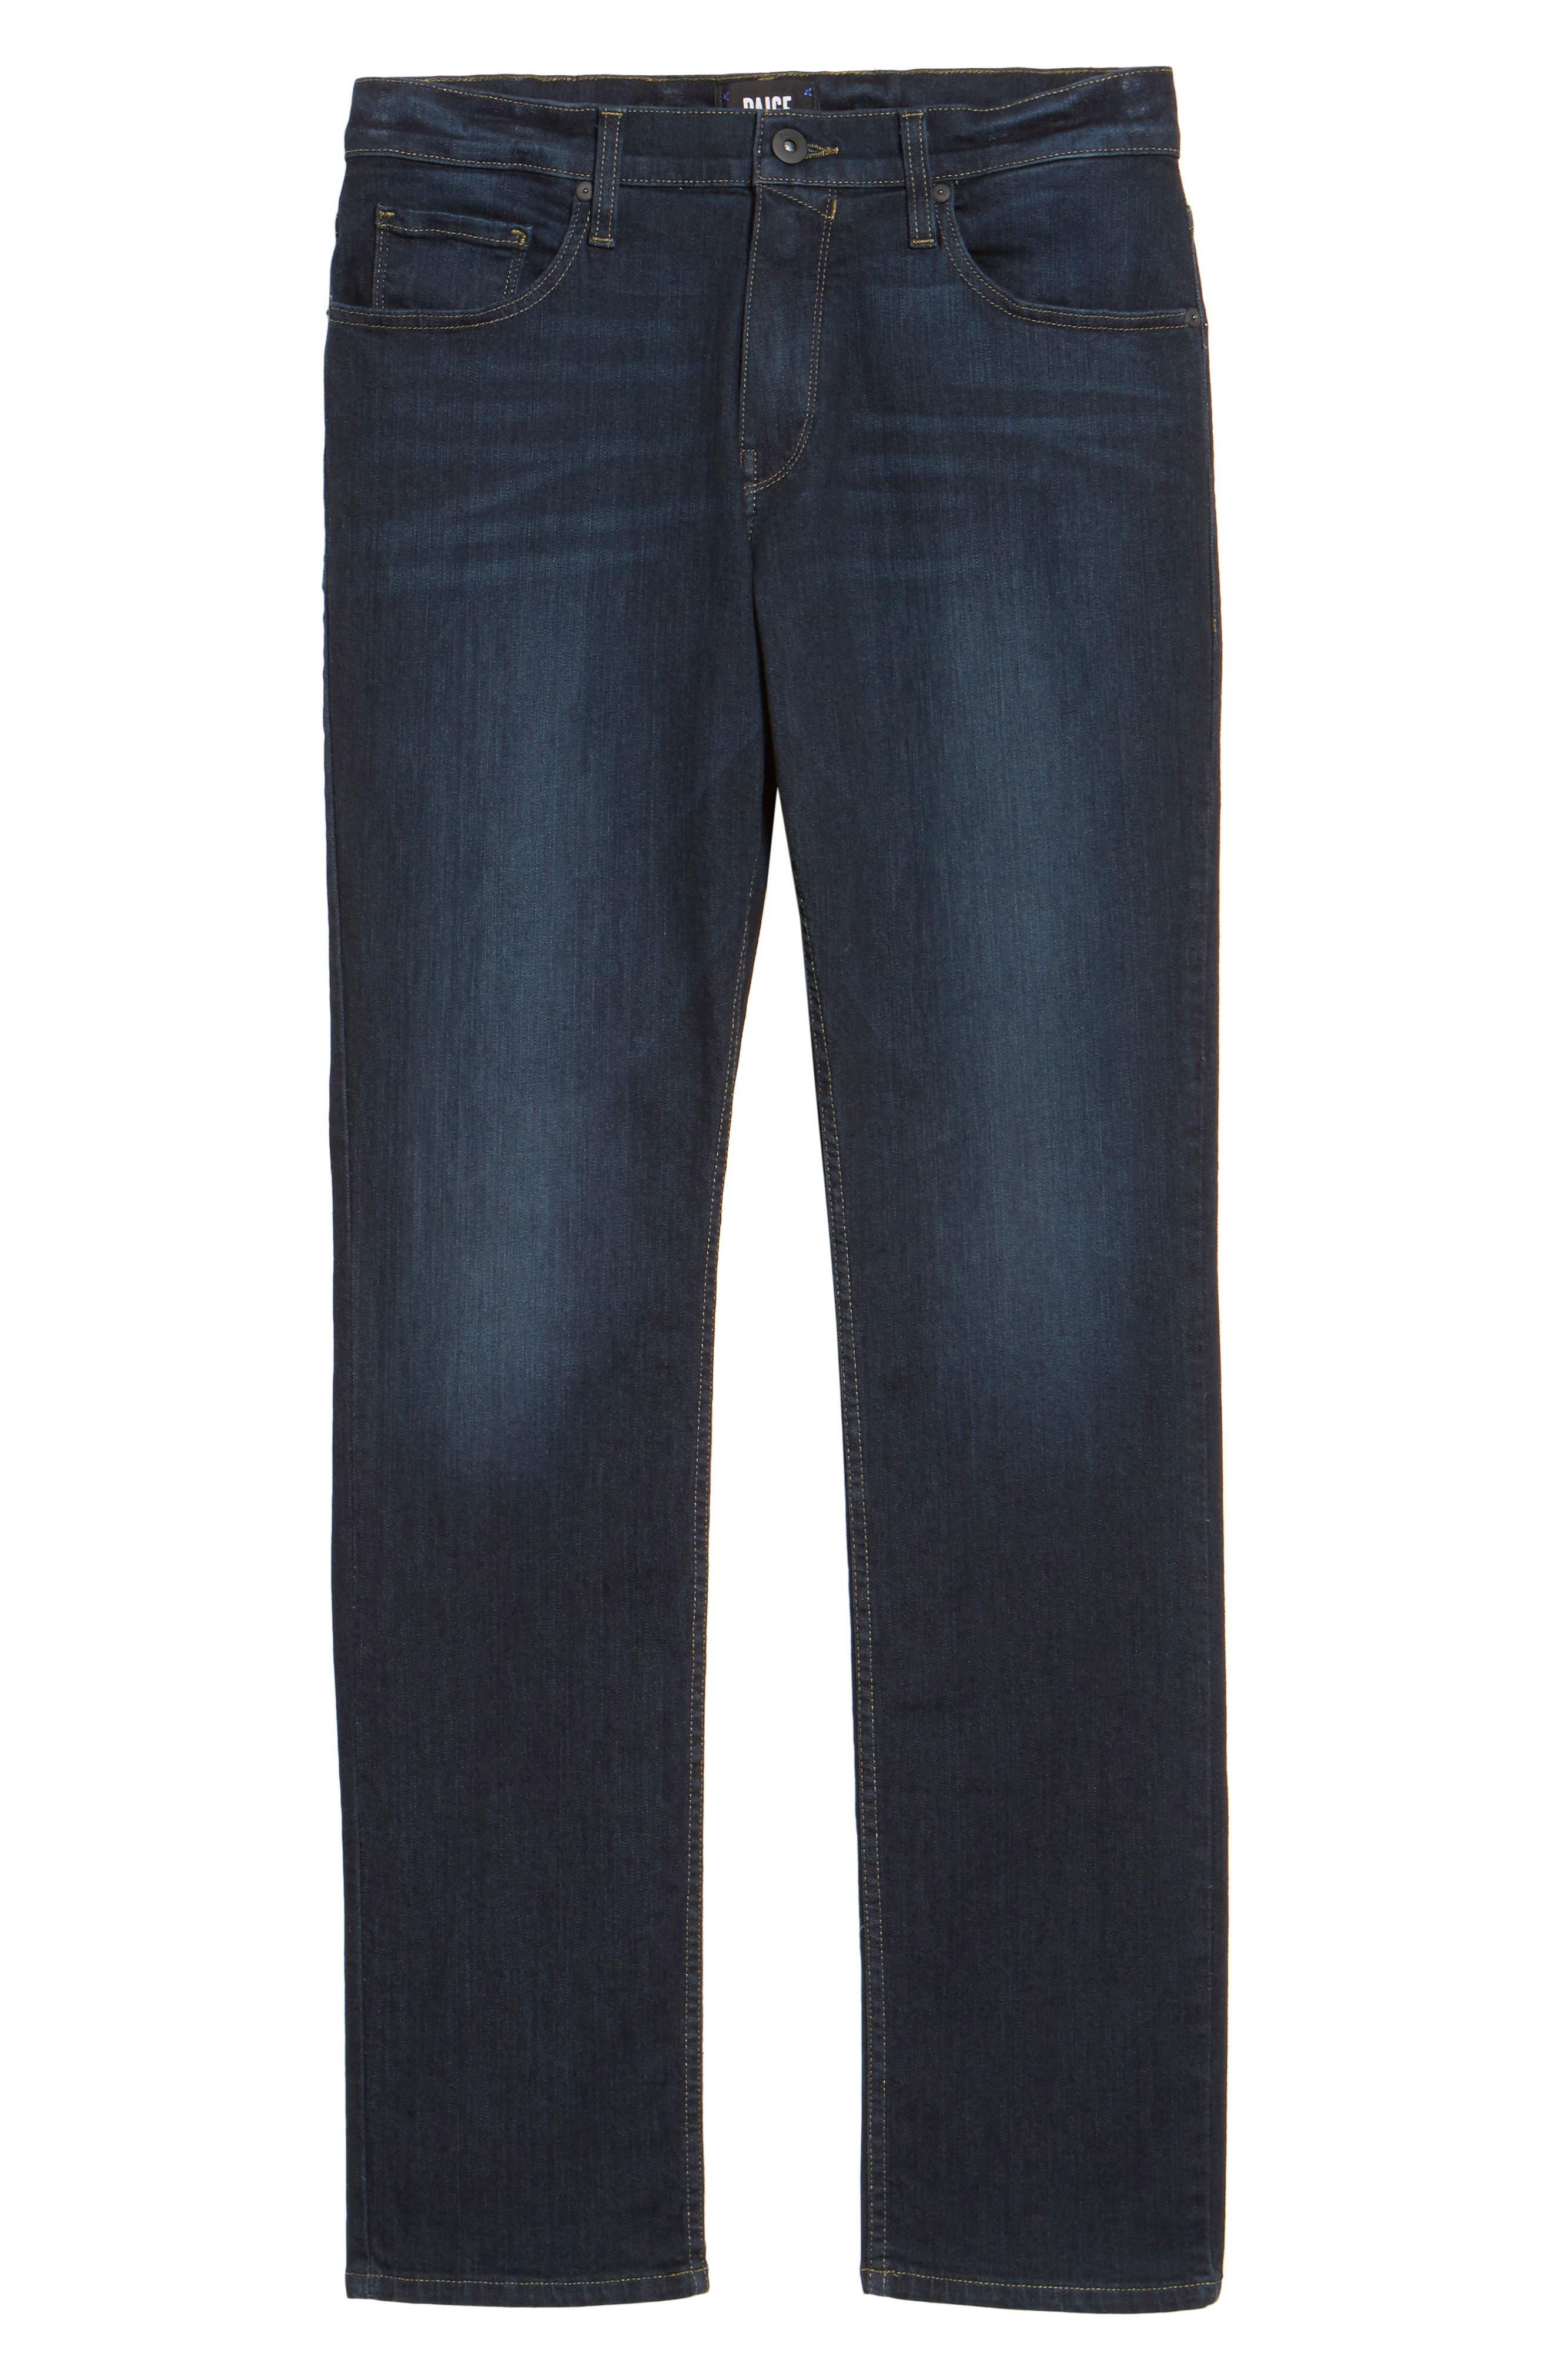 Federal Slim Straight Fit Jeans,                             Alternate thumbnail 6, color,                             400